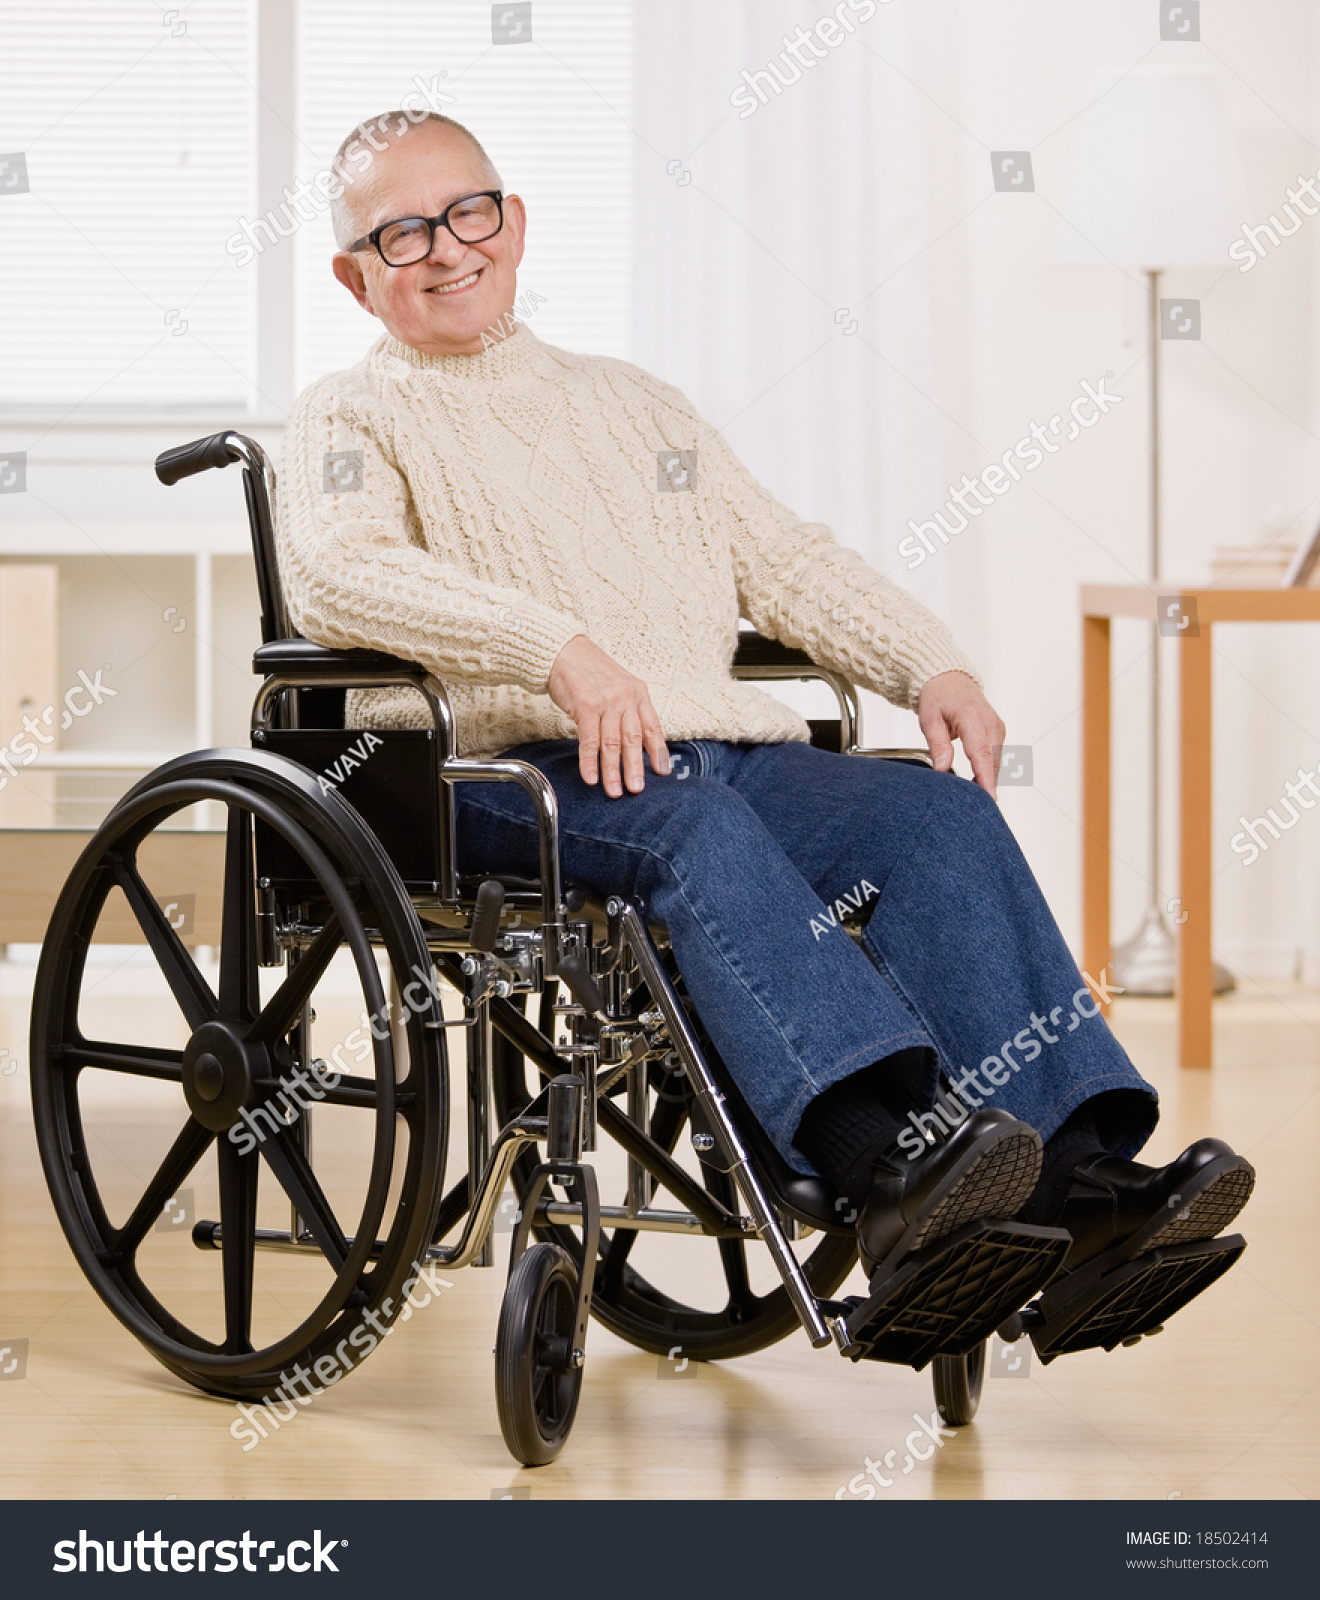 Happy disabled man in wheelchair stock photo 18502414 shutterstock